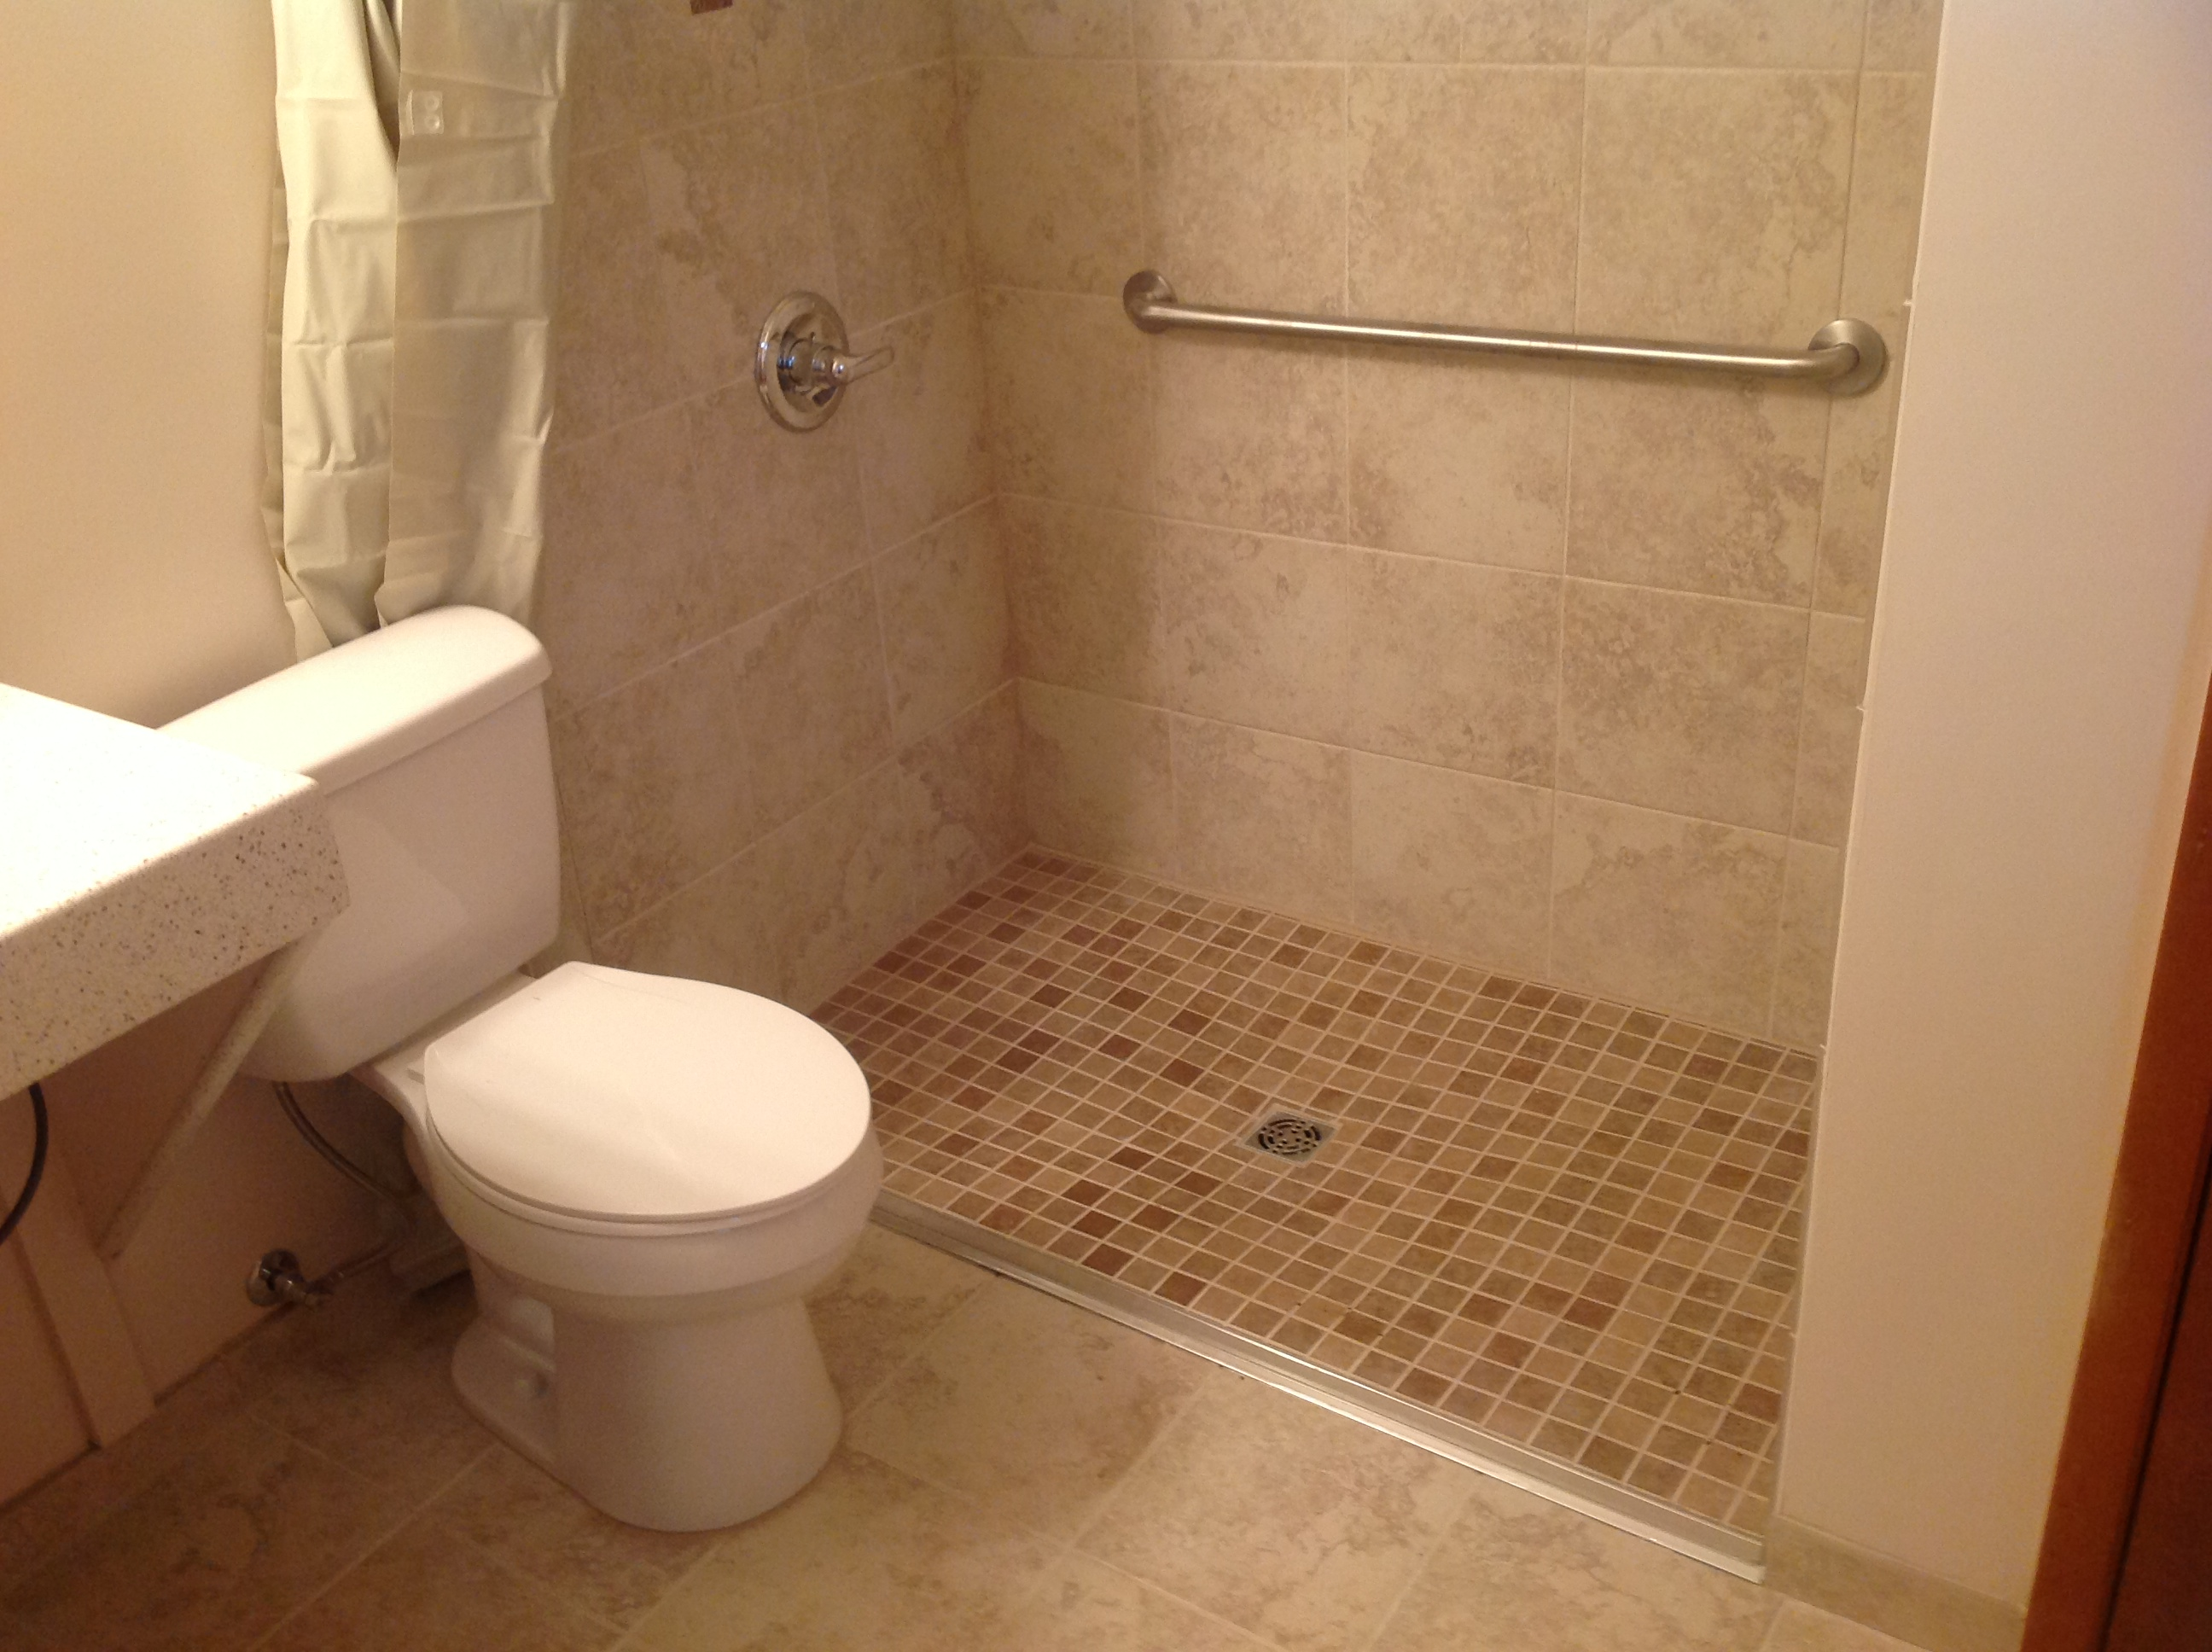 Search. Search for: Handicap Accessible Bathroom